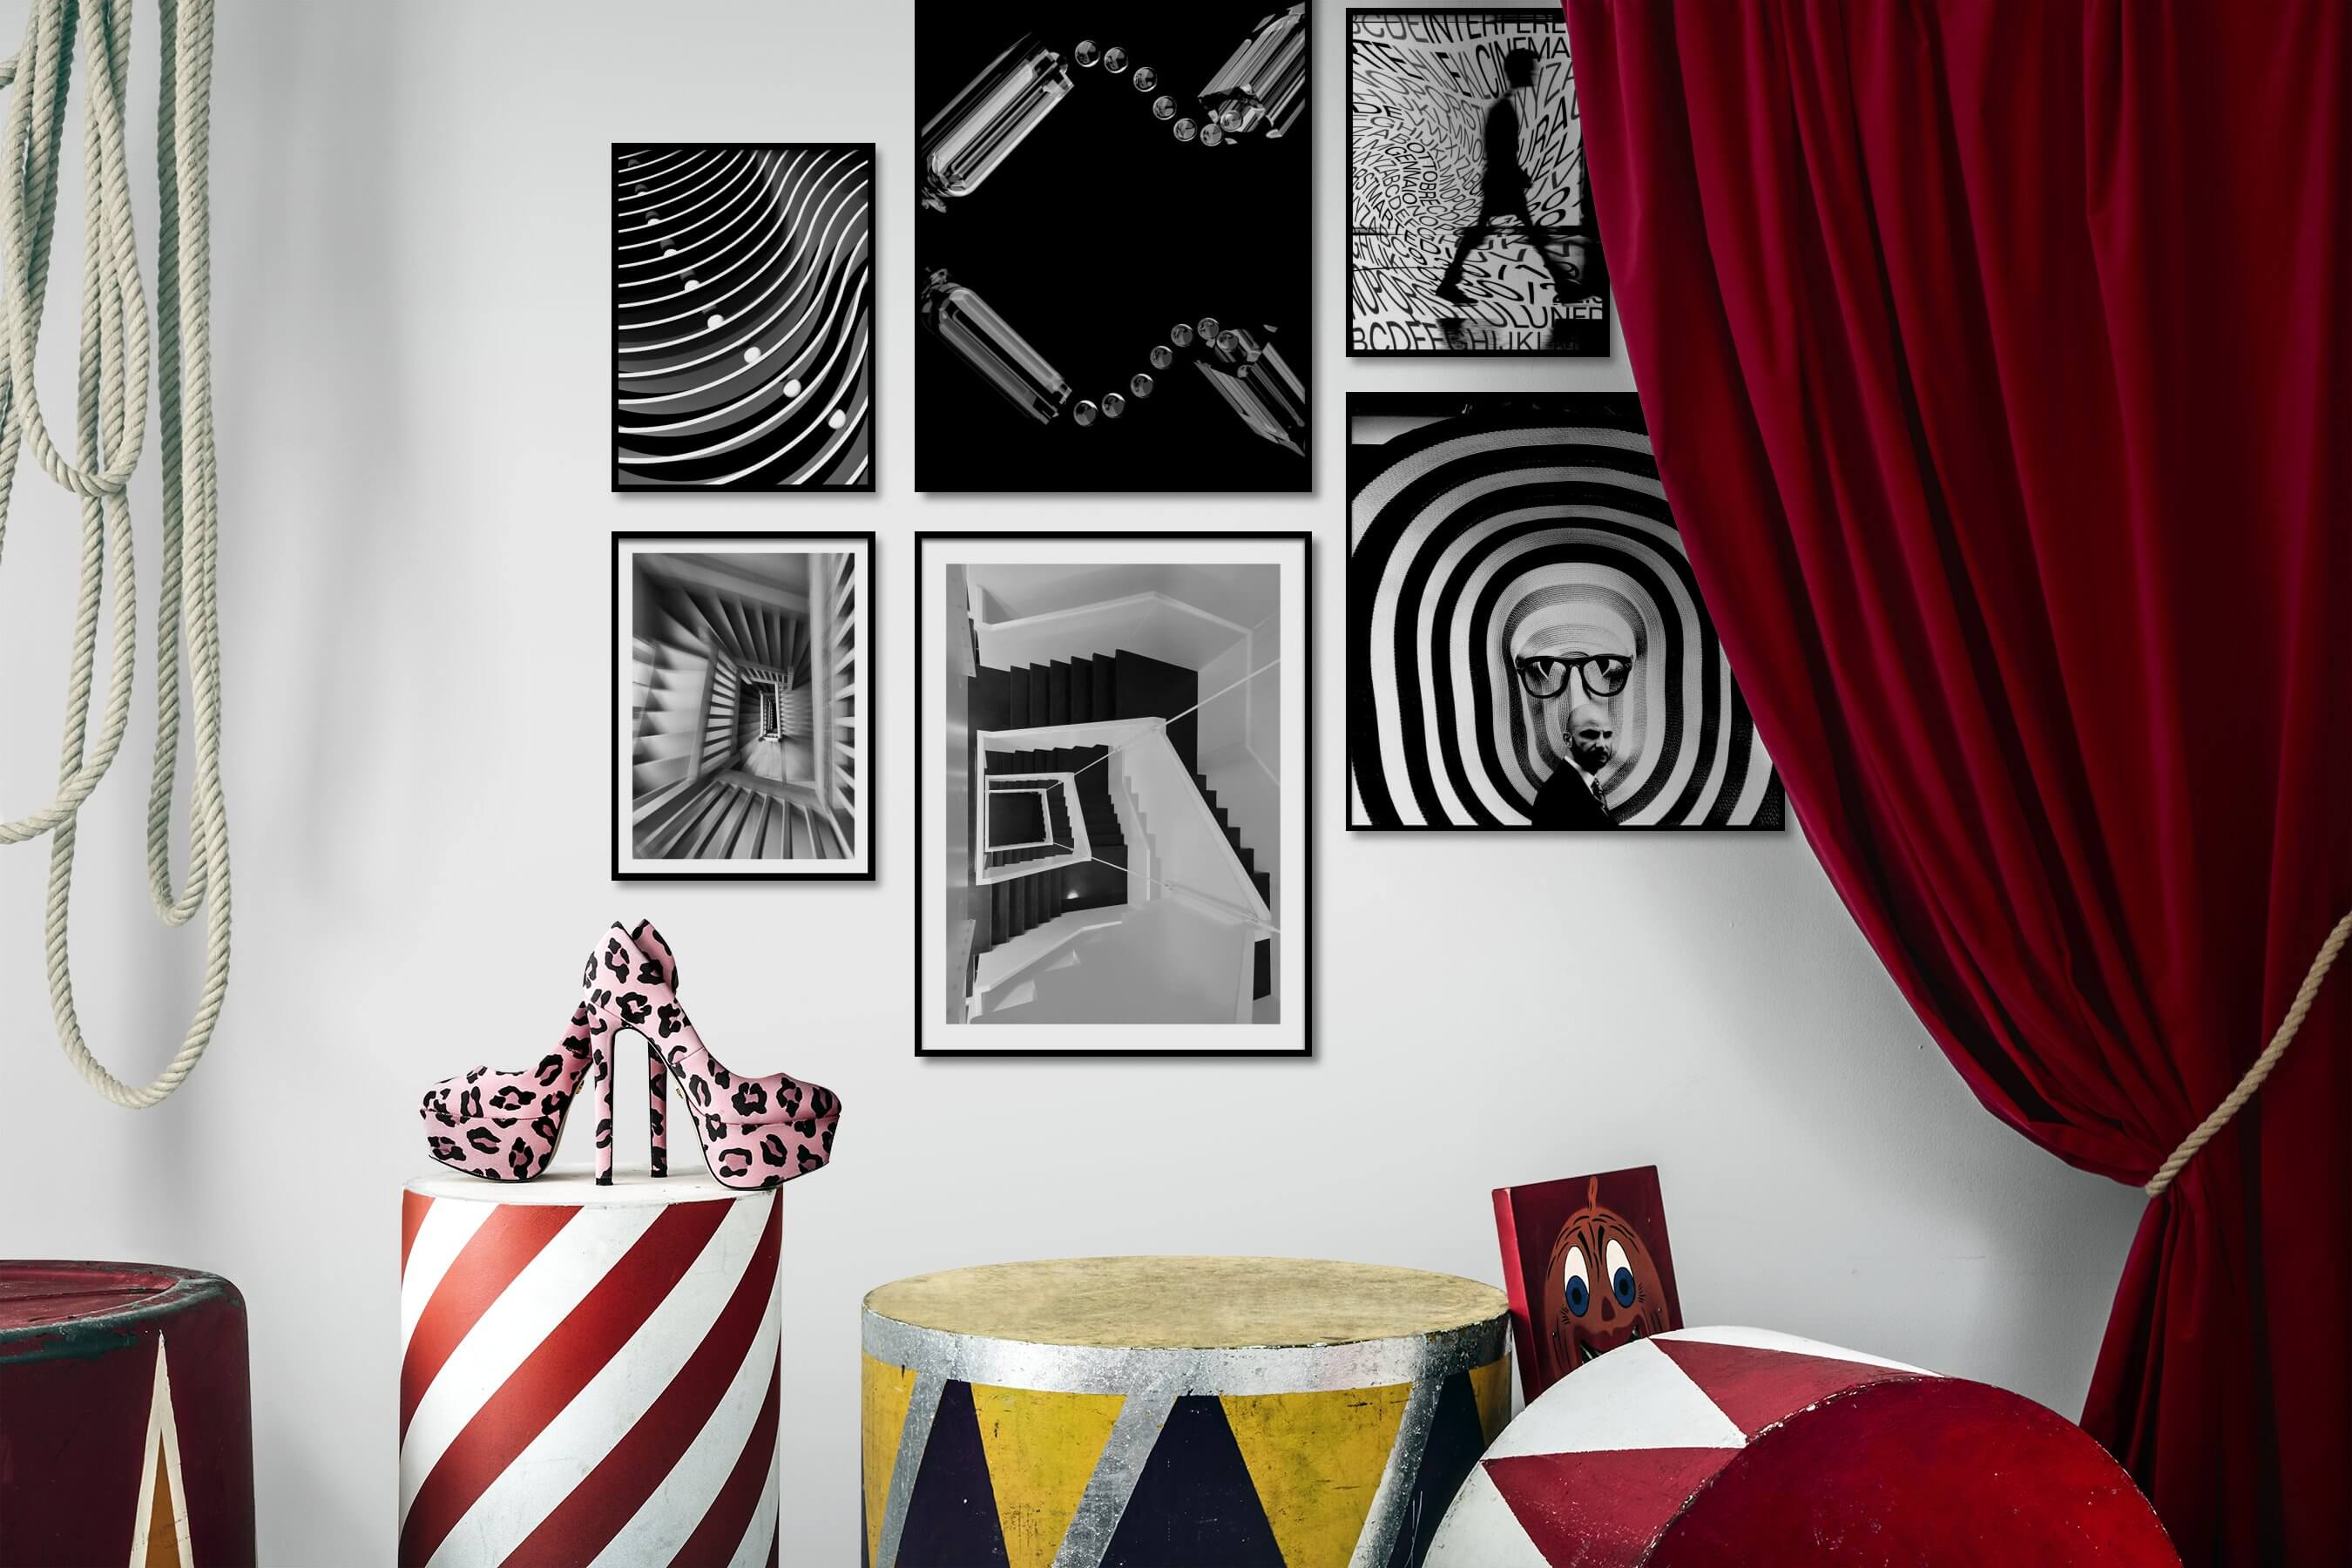 Gallery wall idea with six framed pictures arranged on a wall depicting Black & White, For the Maximalist, Dark Tones, For the Minimalist, For the Moderate, and Artsy